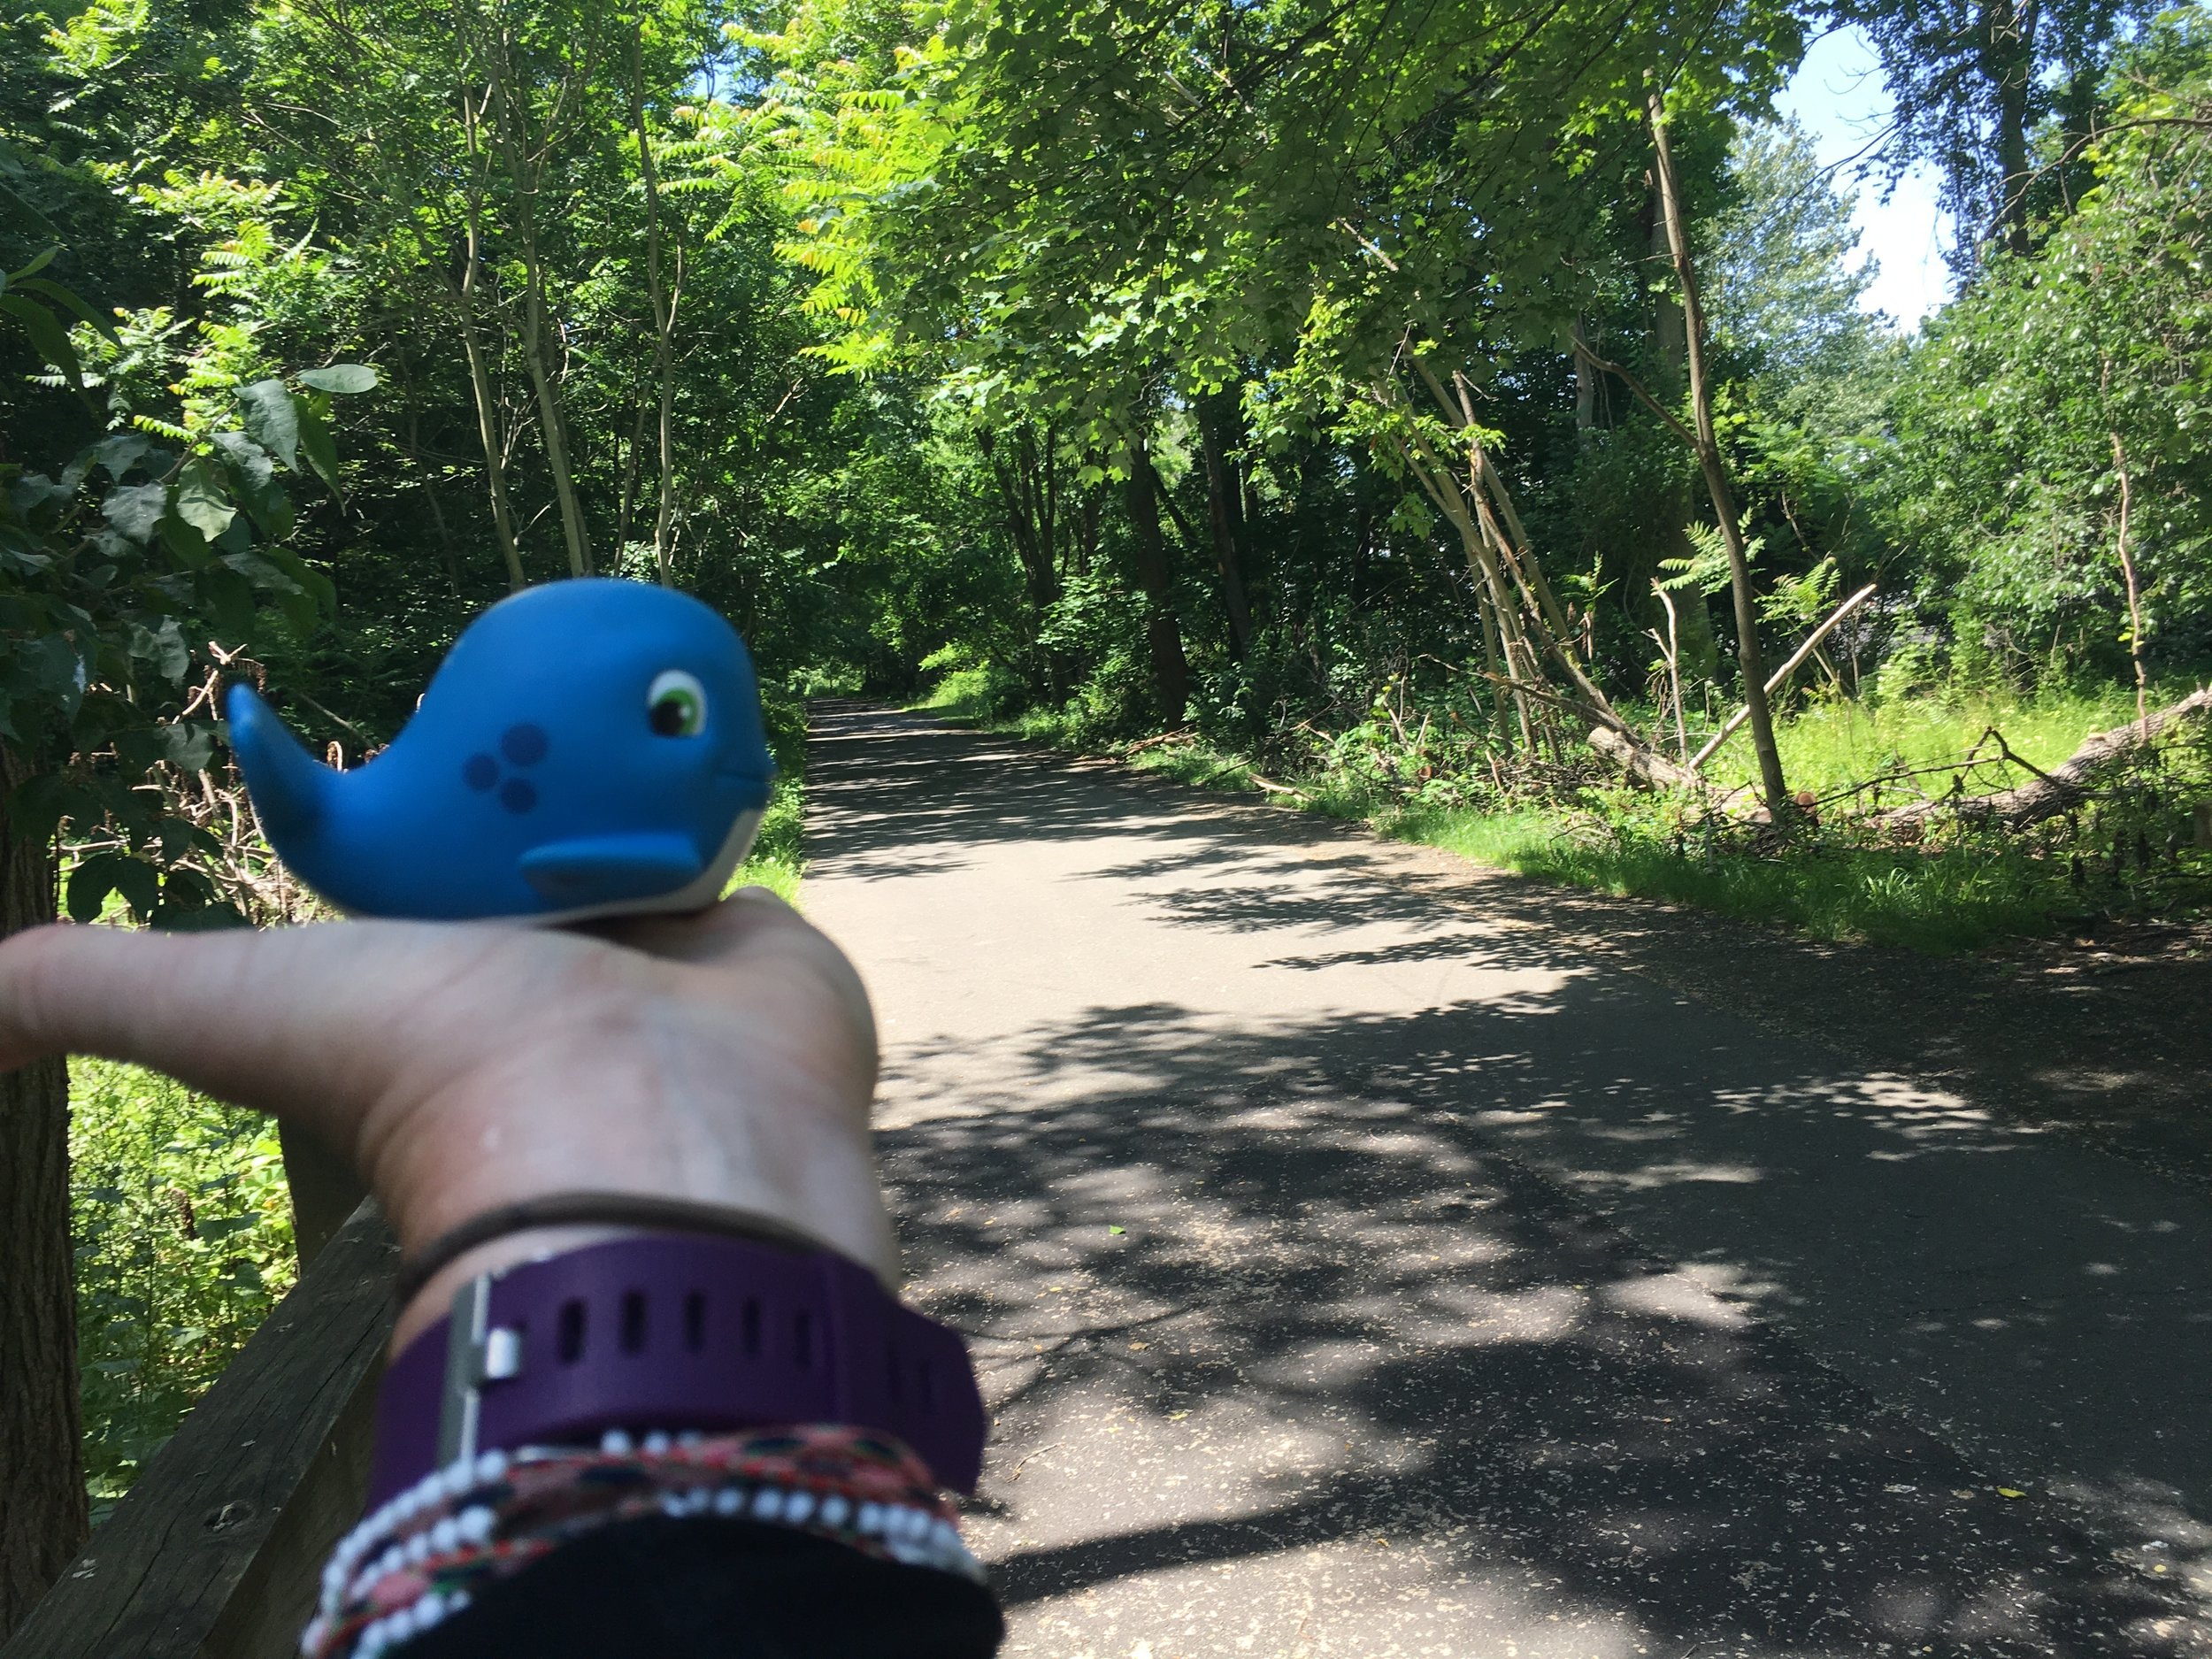 Whaley on the trail